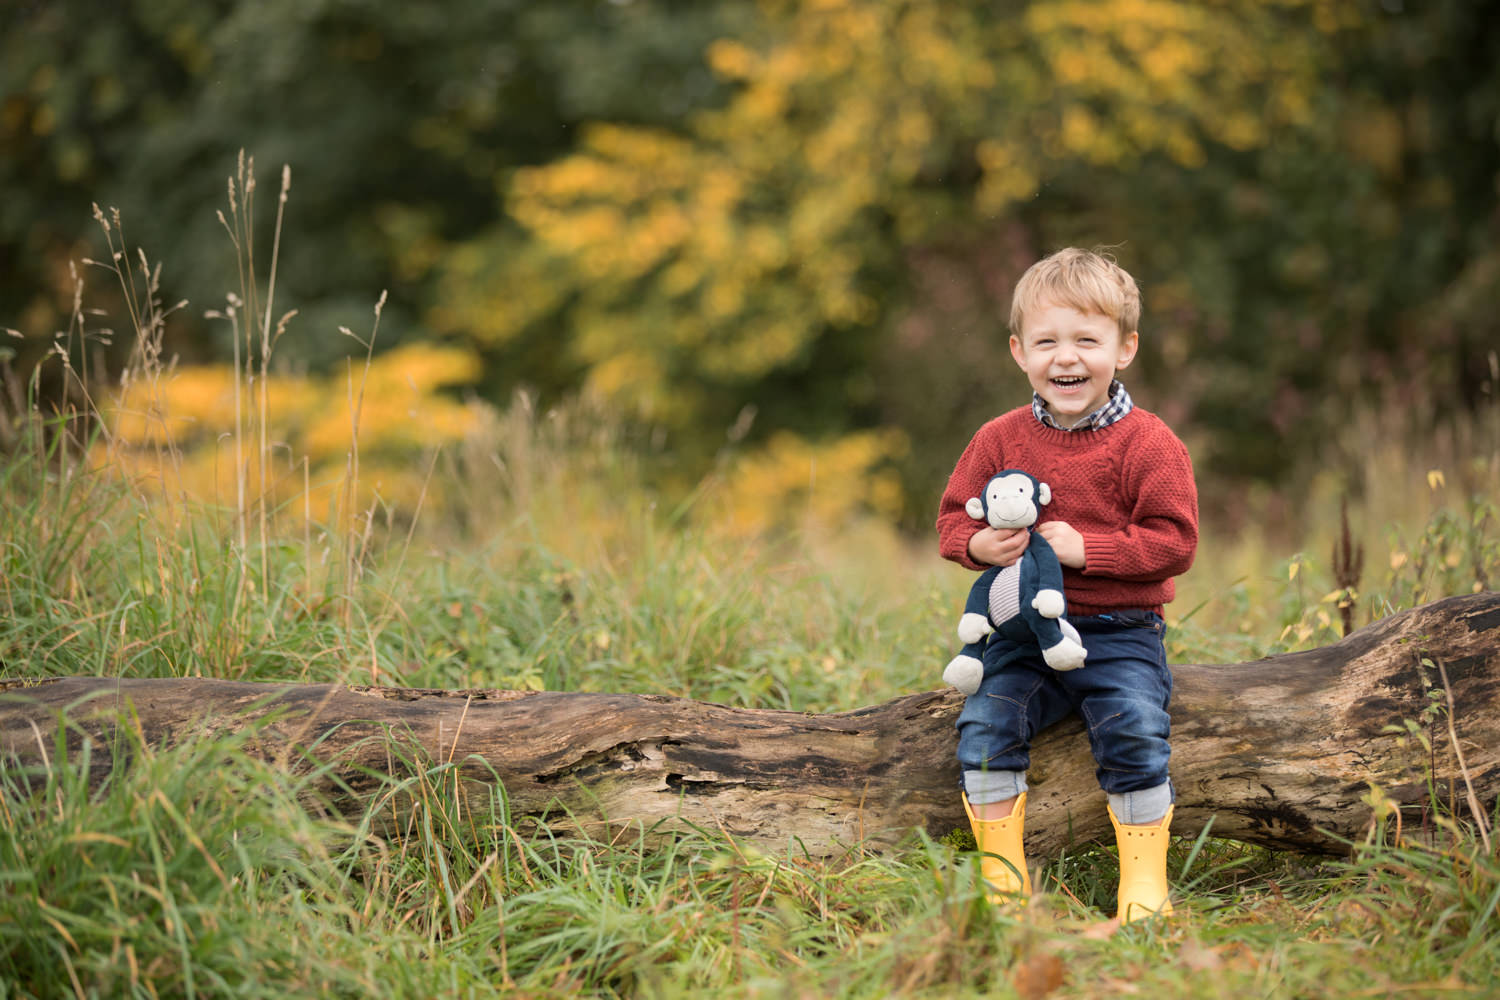 professional family photograph of three generations of a family sitting on a tree log in the woods by family photographer Beautiful Bairns Photography Edinburgh taken at Cammo estate Edinburgh